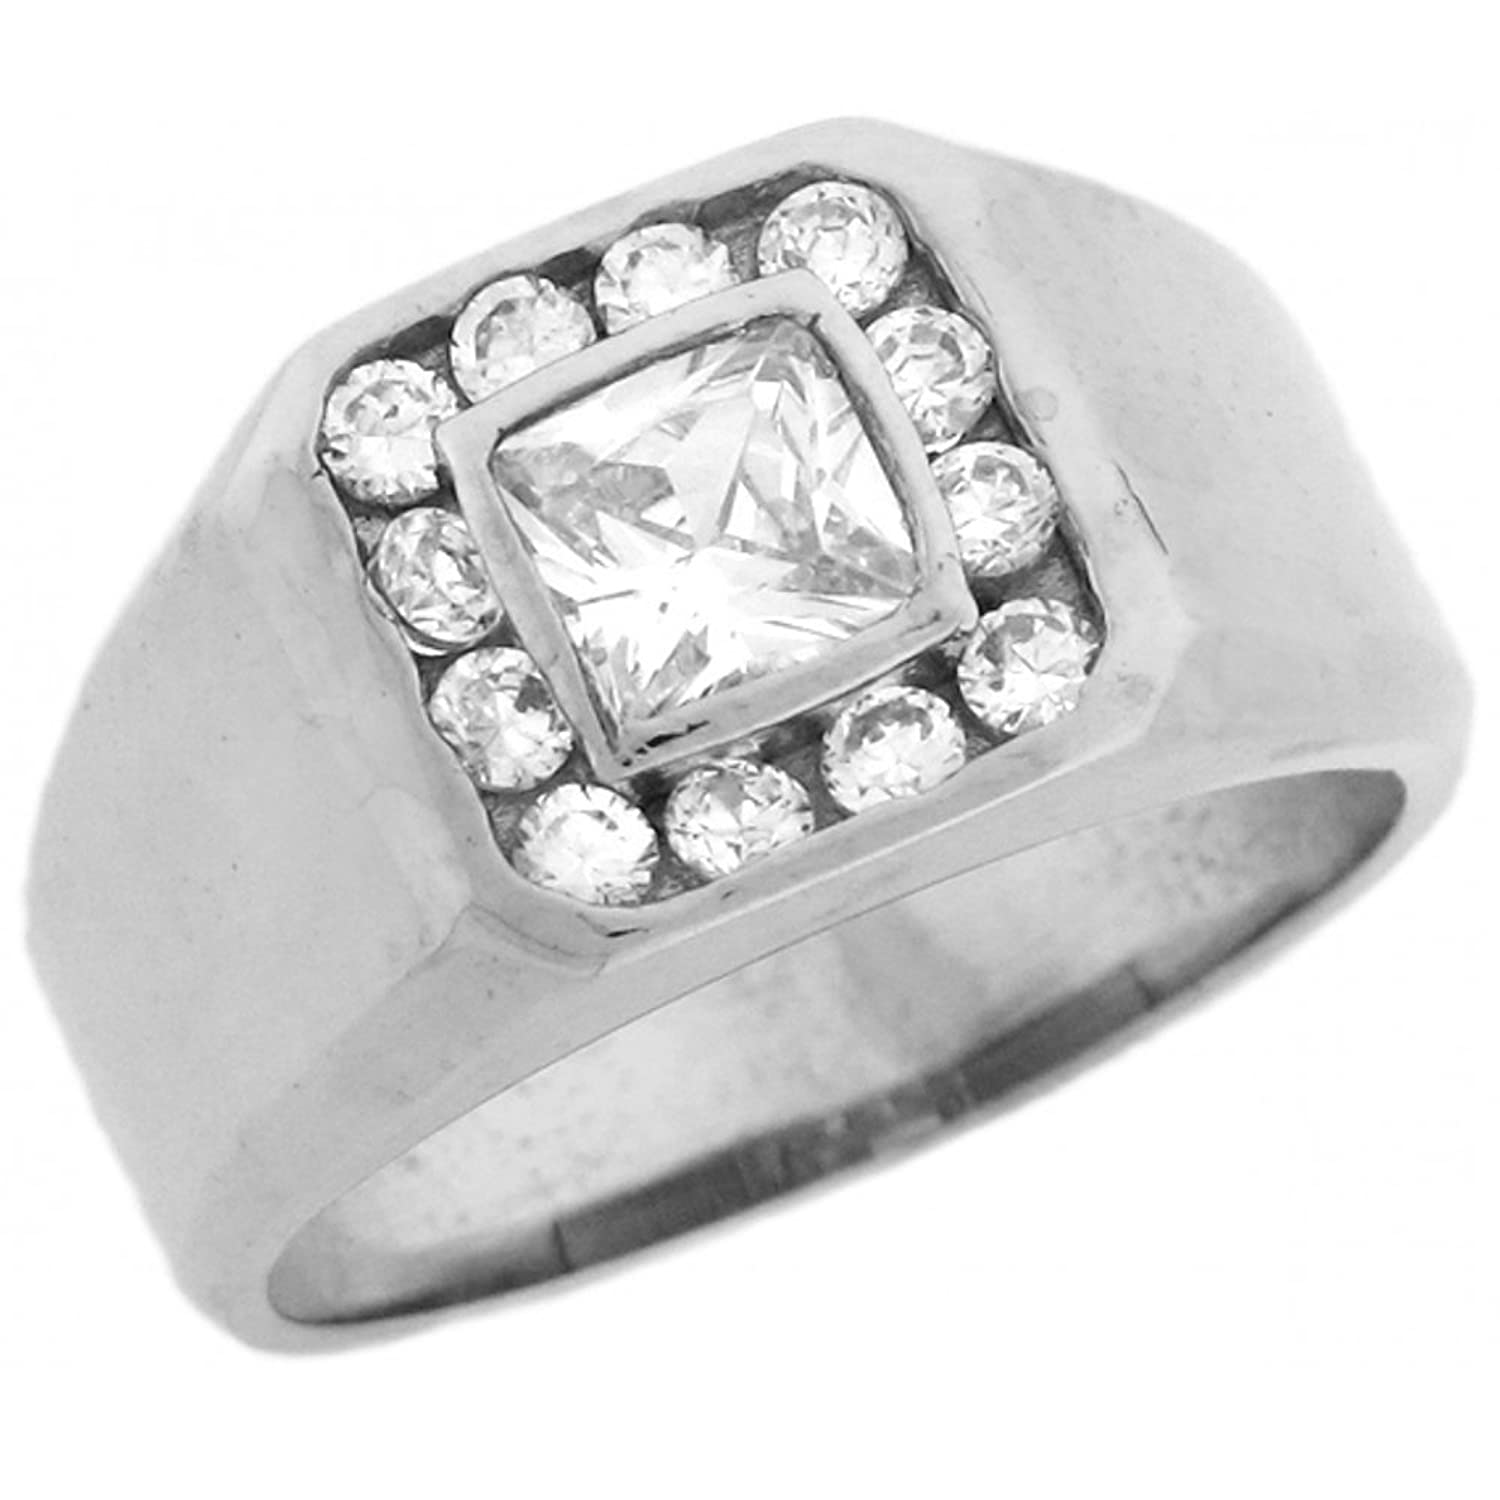 10k White Gold Mens Square Center CZ Ring with Round Cut Halo Detail